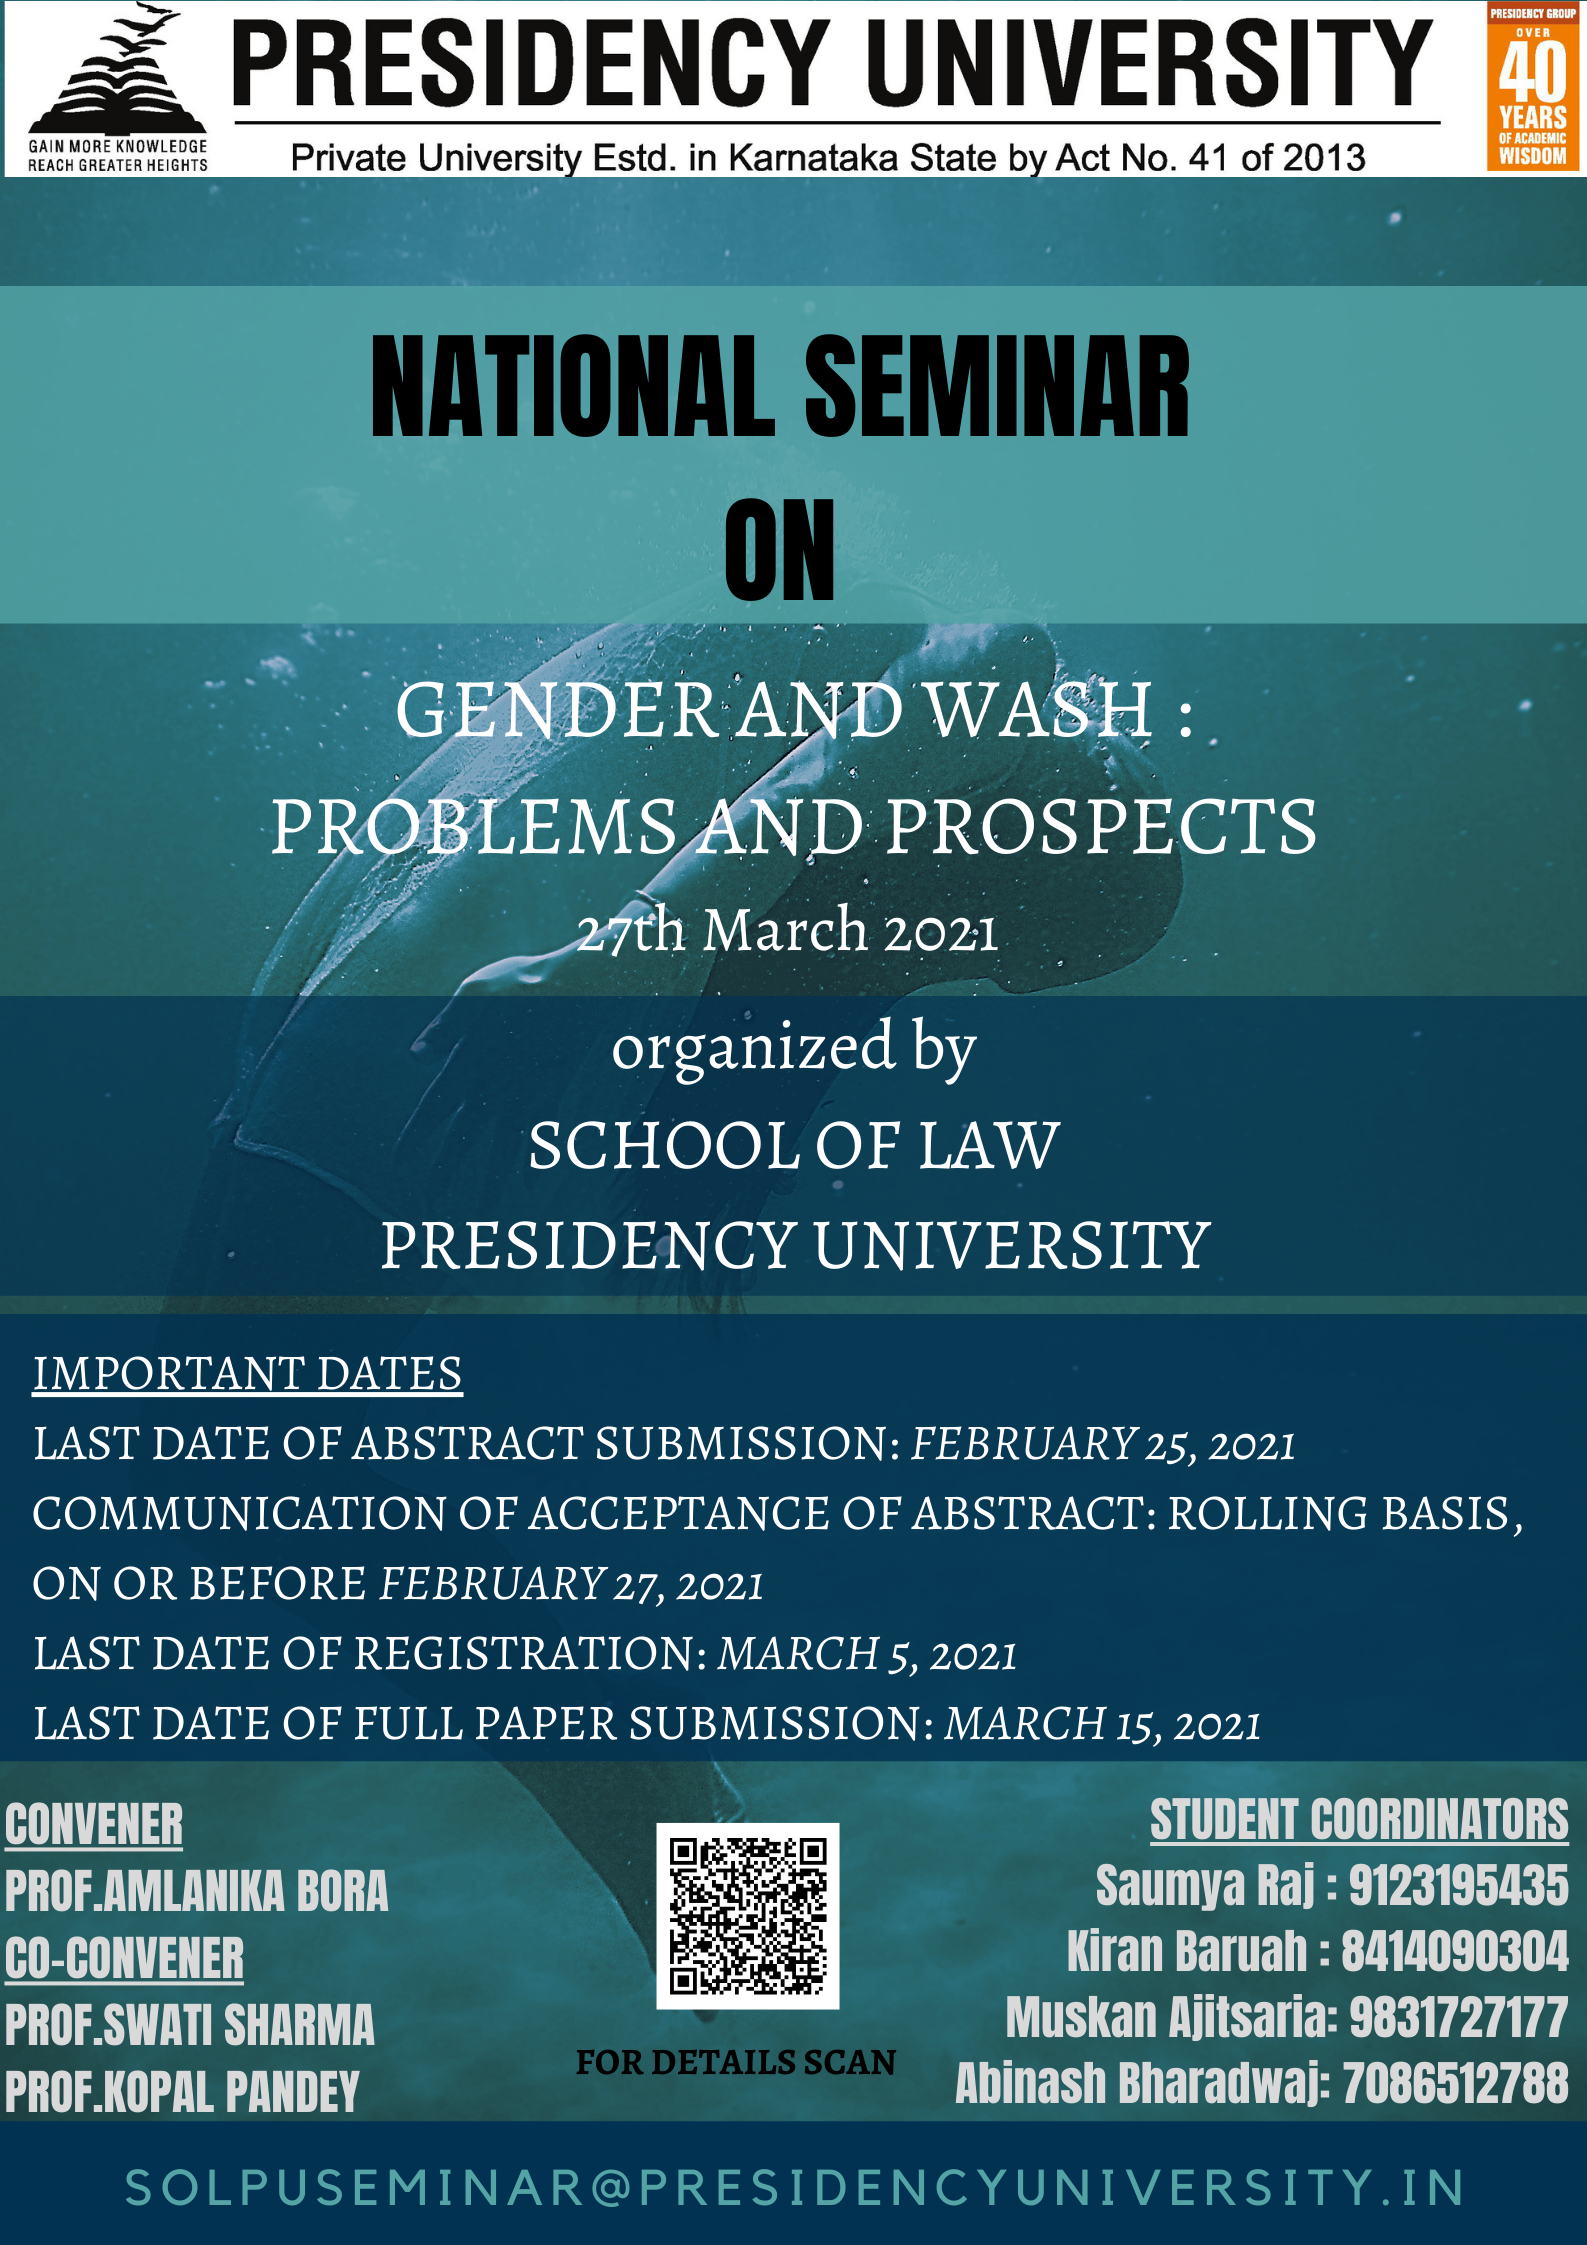 """National Seminar on """"Gender and Wash: Problems and Prospects"""" on March 27, 2021, by Presidency University."""